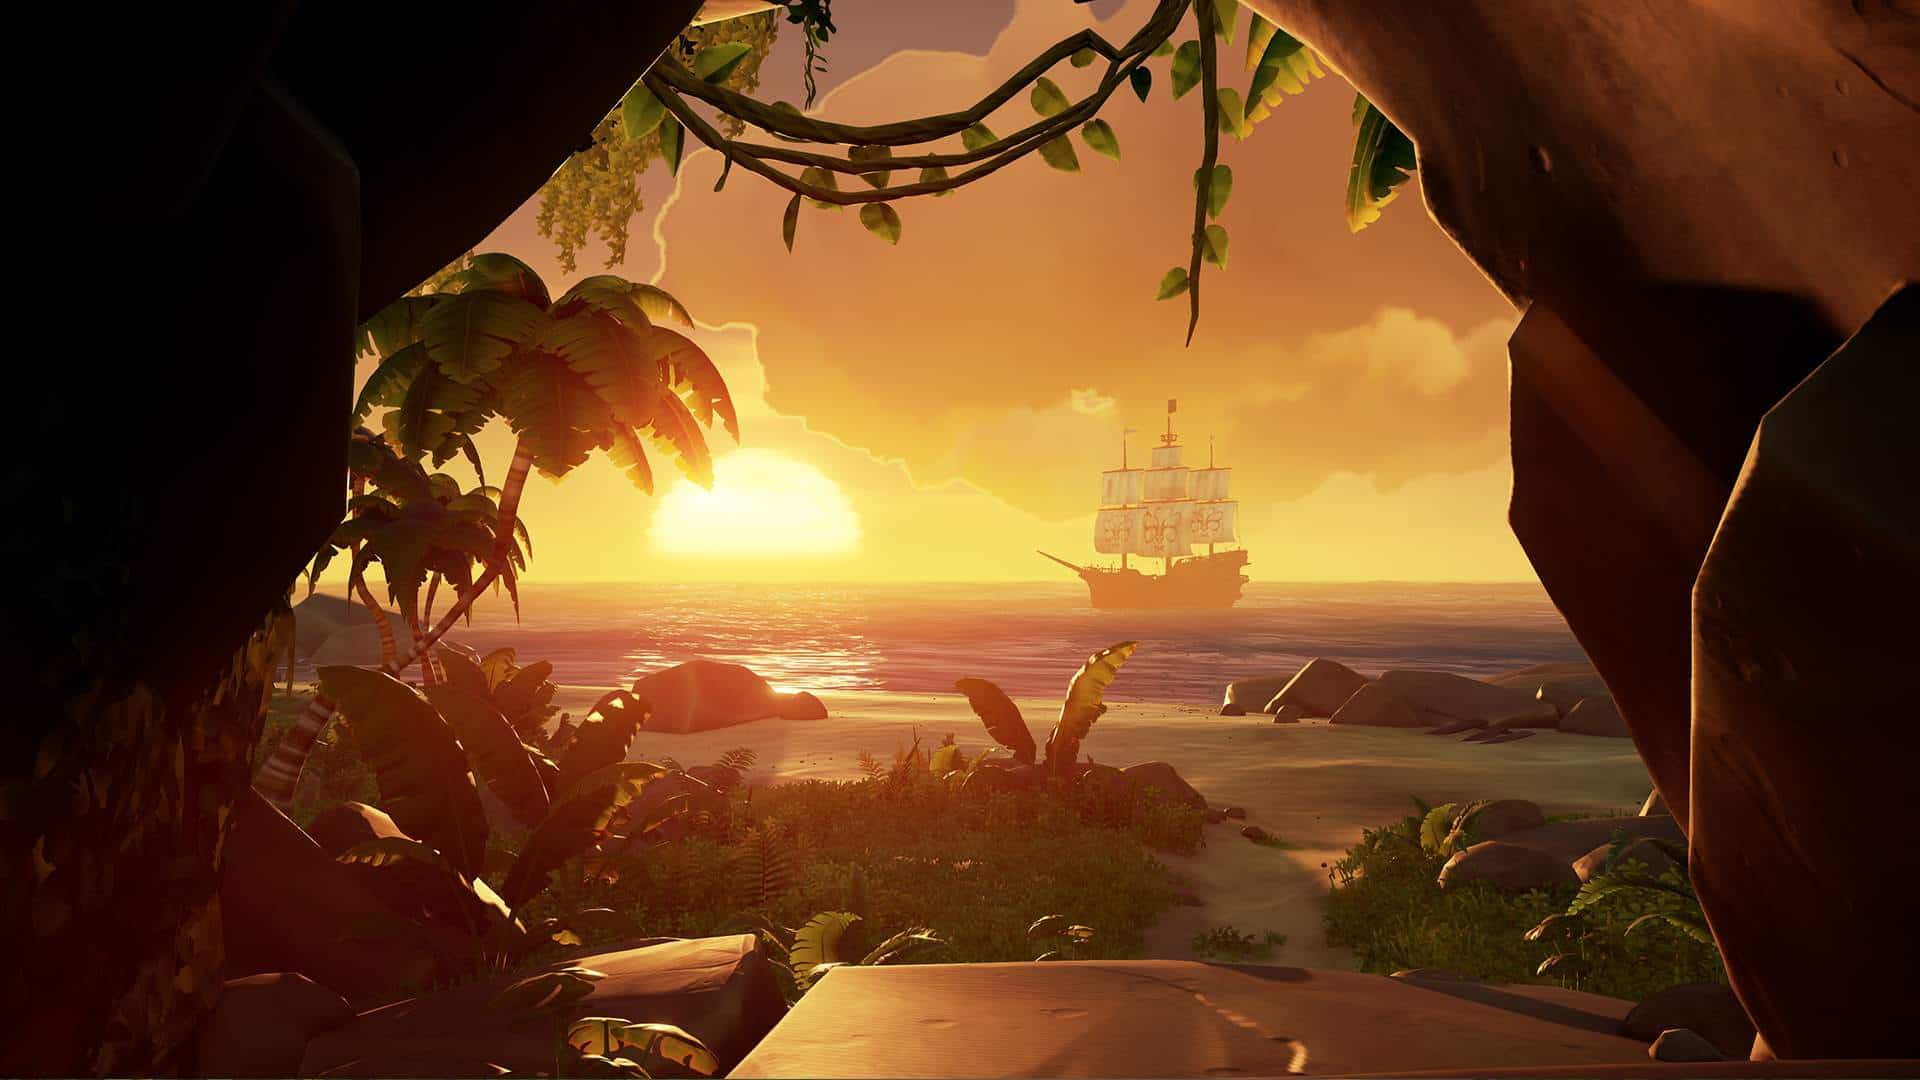 You can play Sea of Thieves right now anywhere in the world